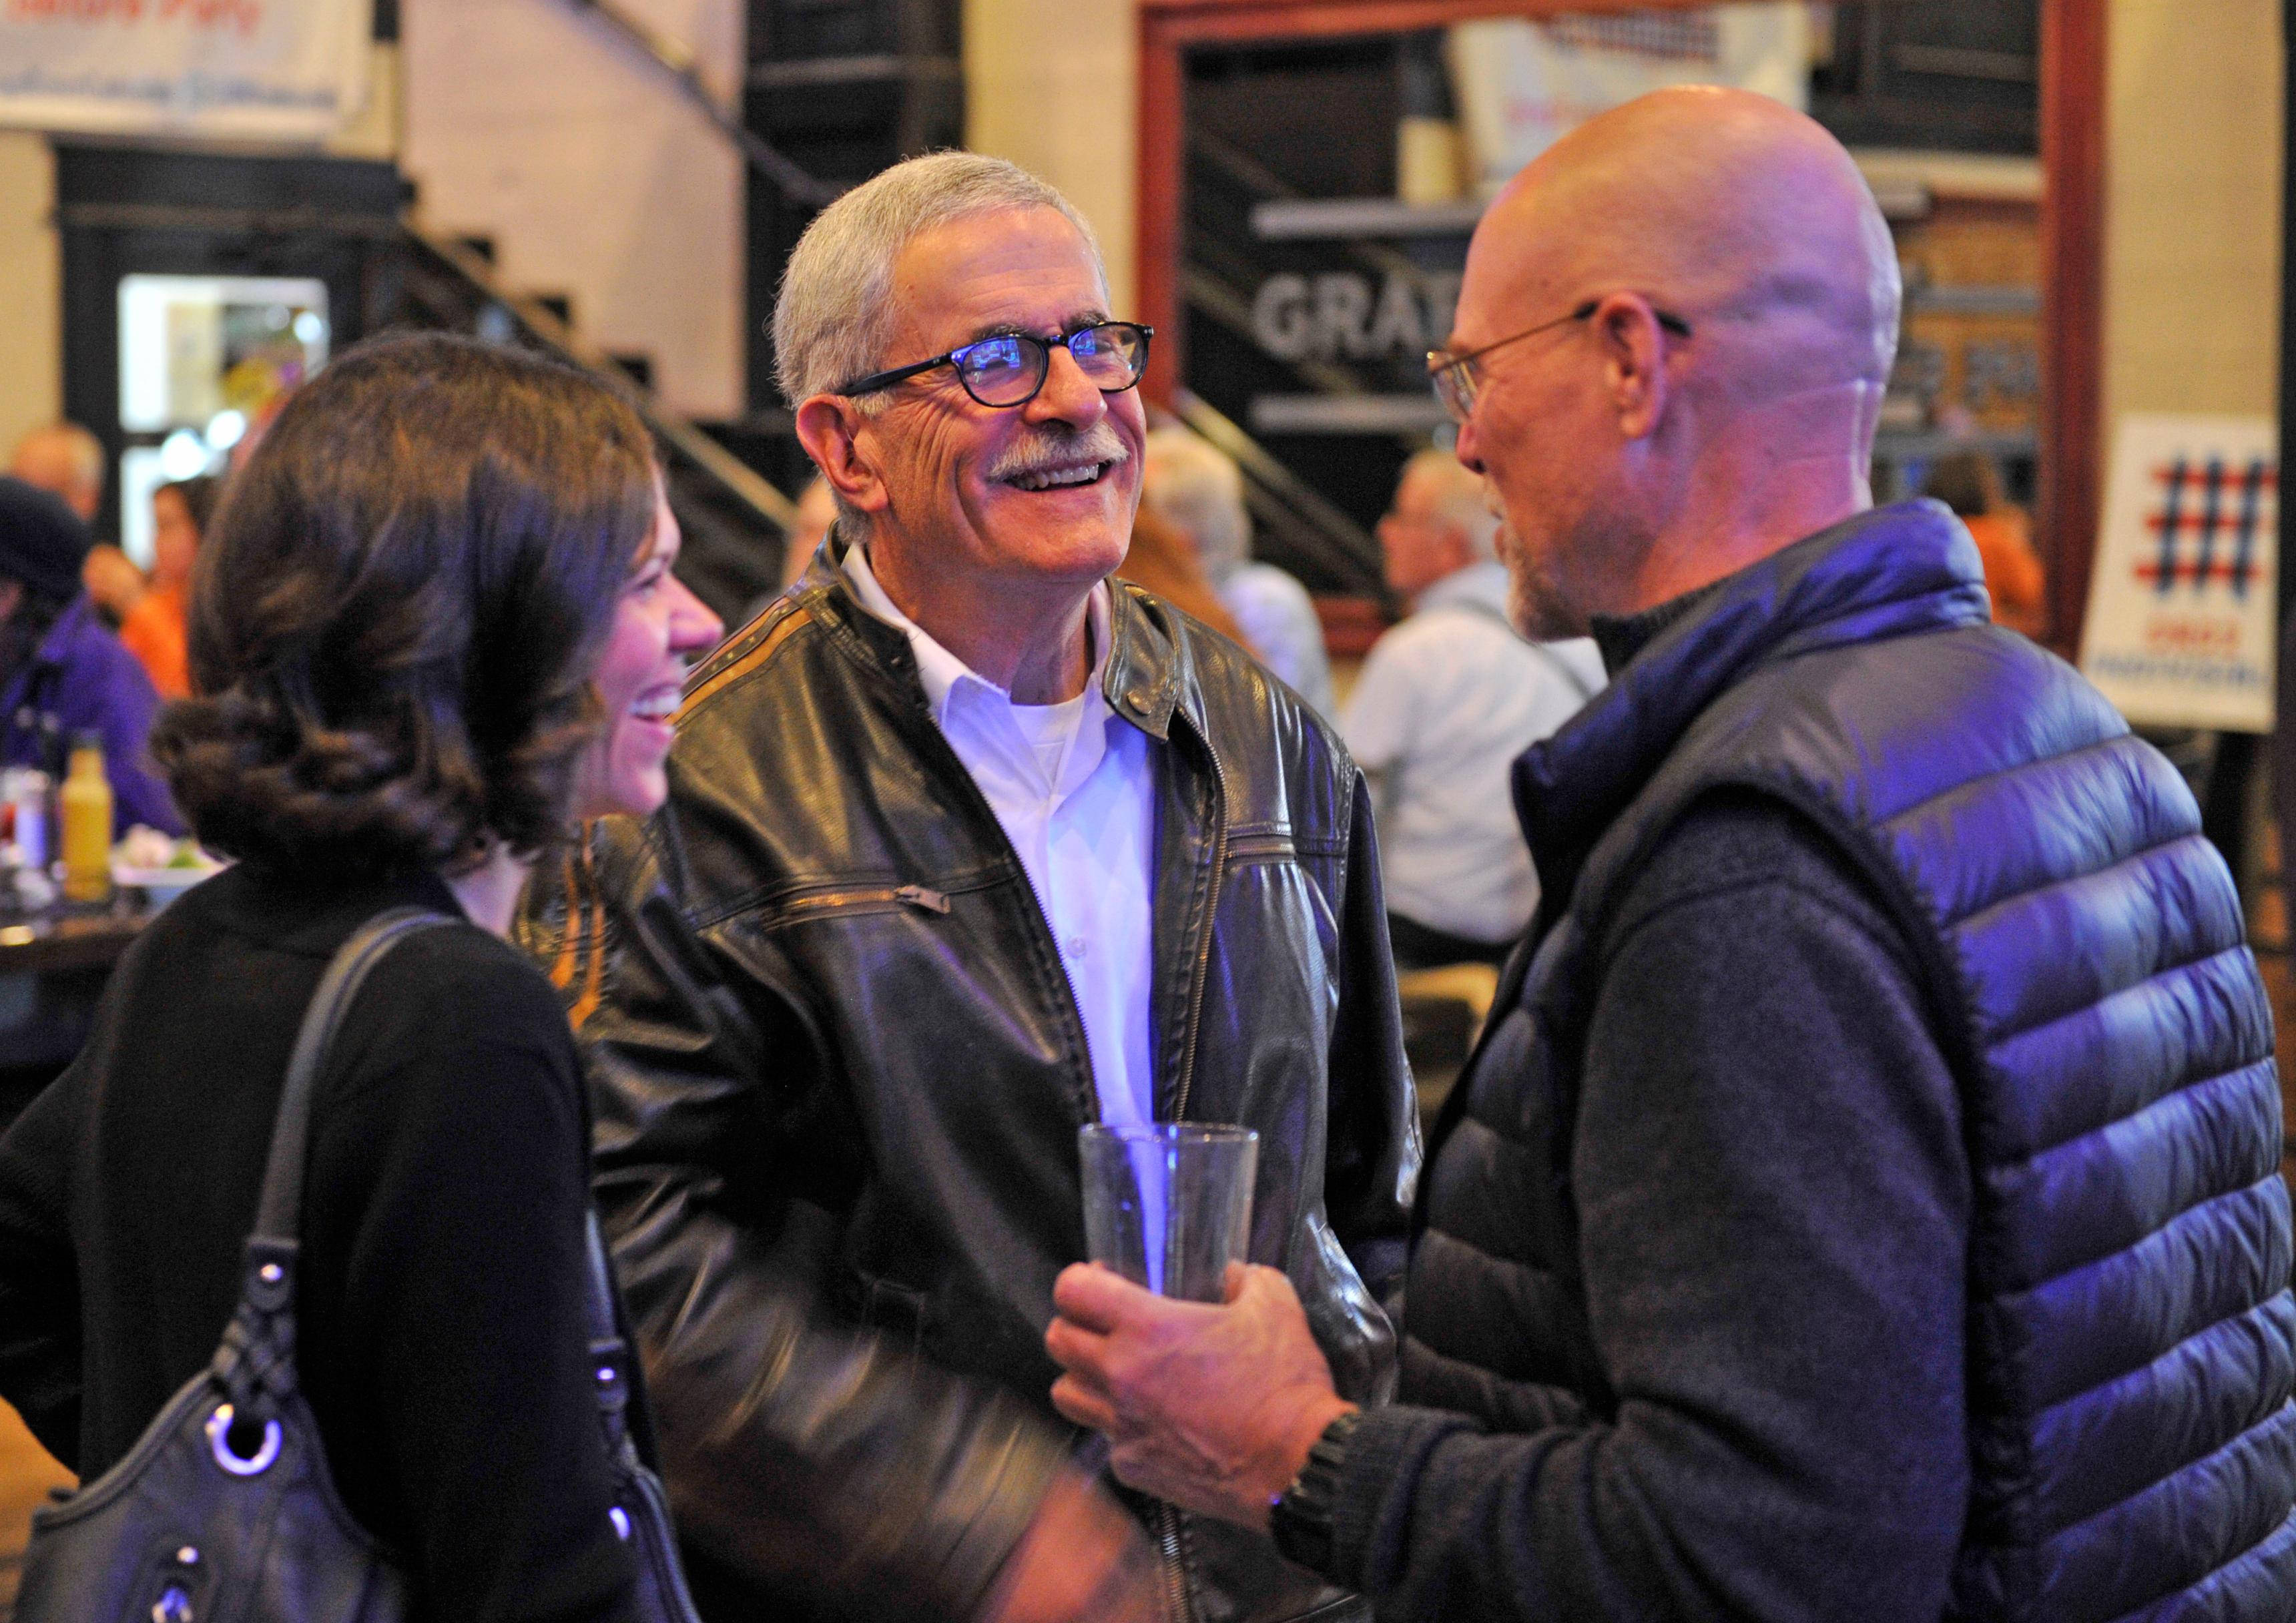 Former Jackson County Commissioner Jeff Golden attends an election night watch party at the Grape Street Bar and Grill in Medford. Jamie Lusch / Mail Tribune